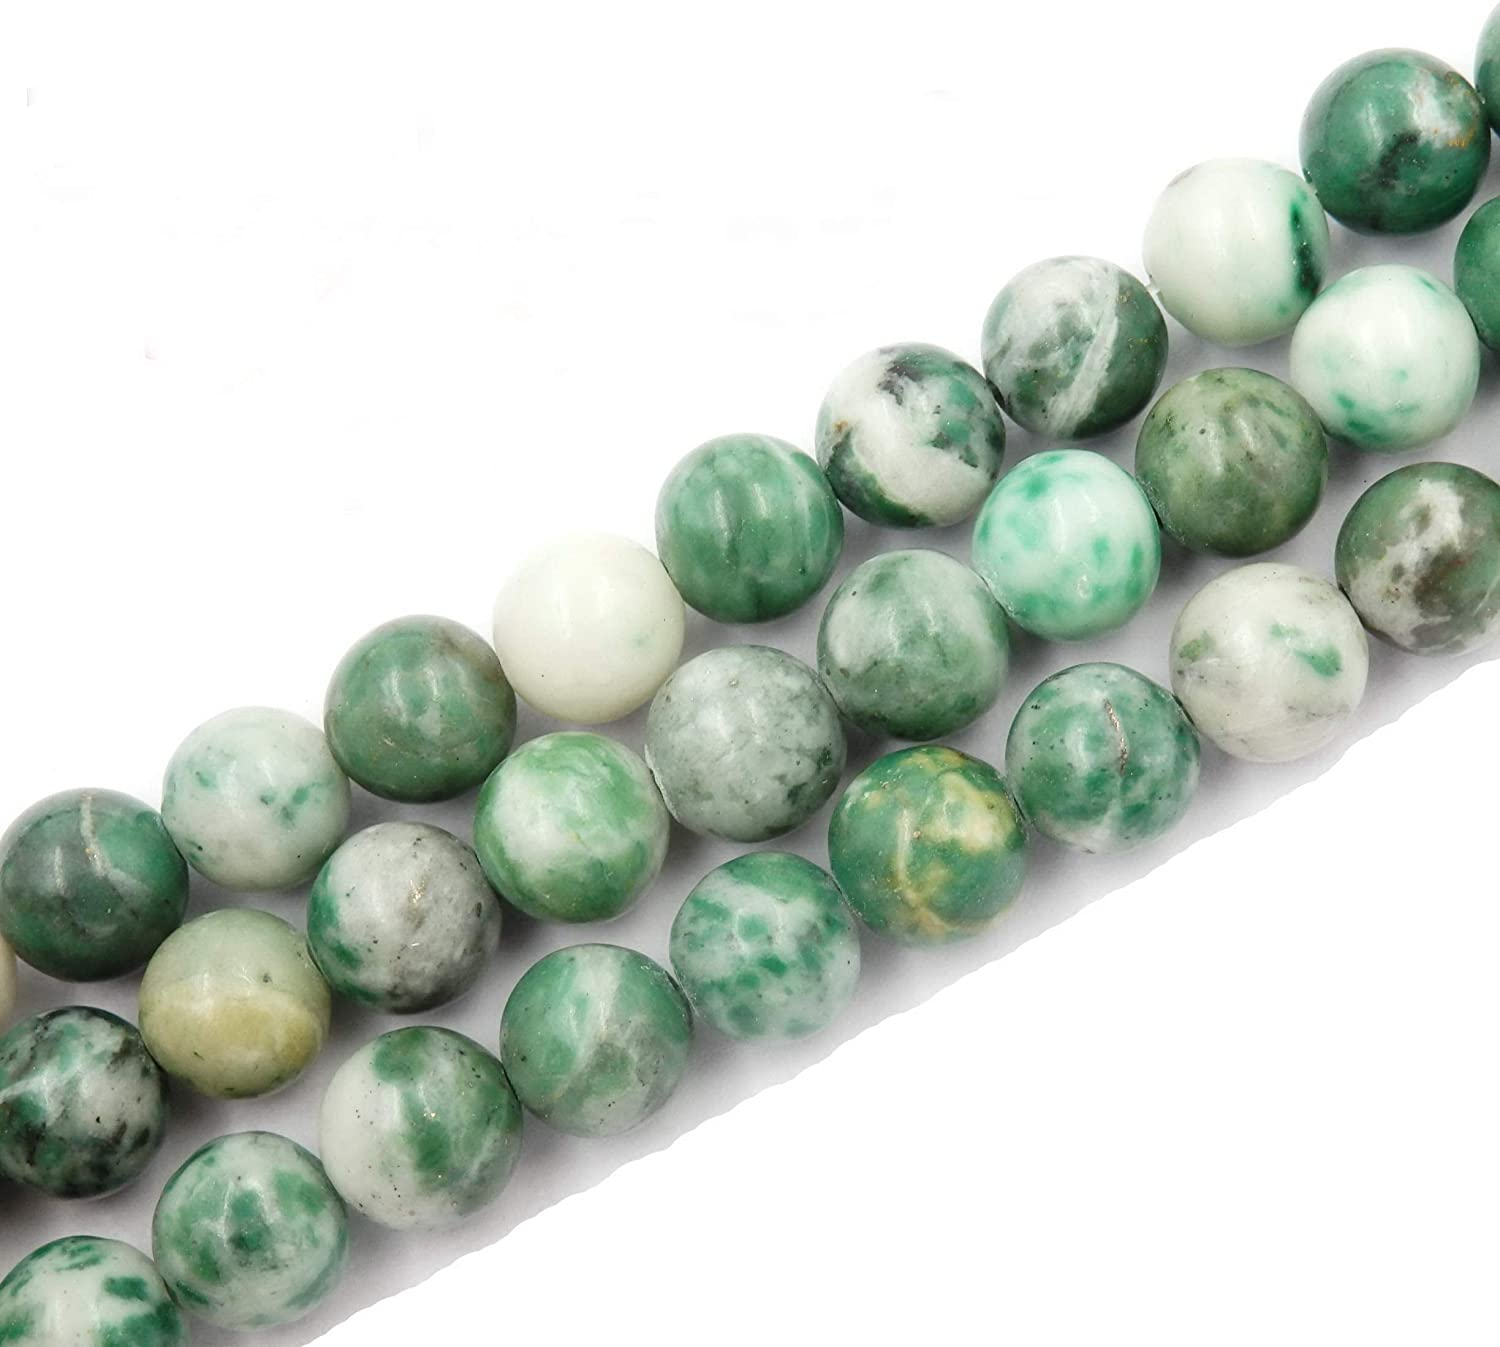 Malahill Natural Stone Beads for Jewelry Making DIY Beads for Bracelets Necklaces 1 Strand Green Spot Jasper 6mm